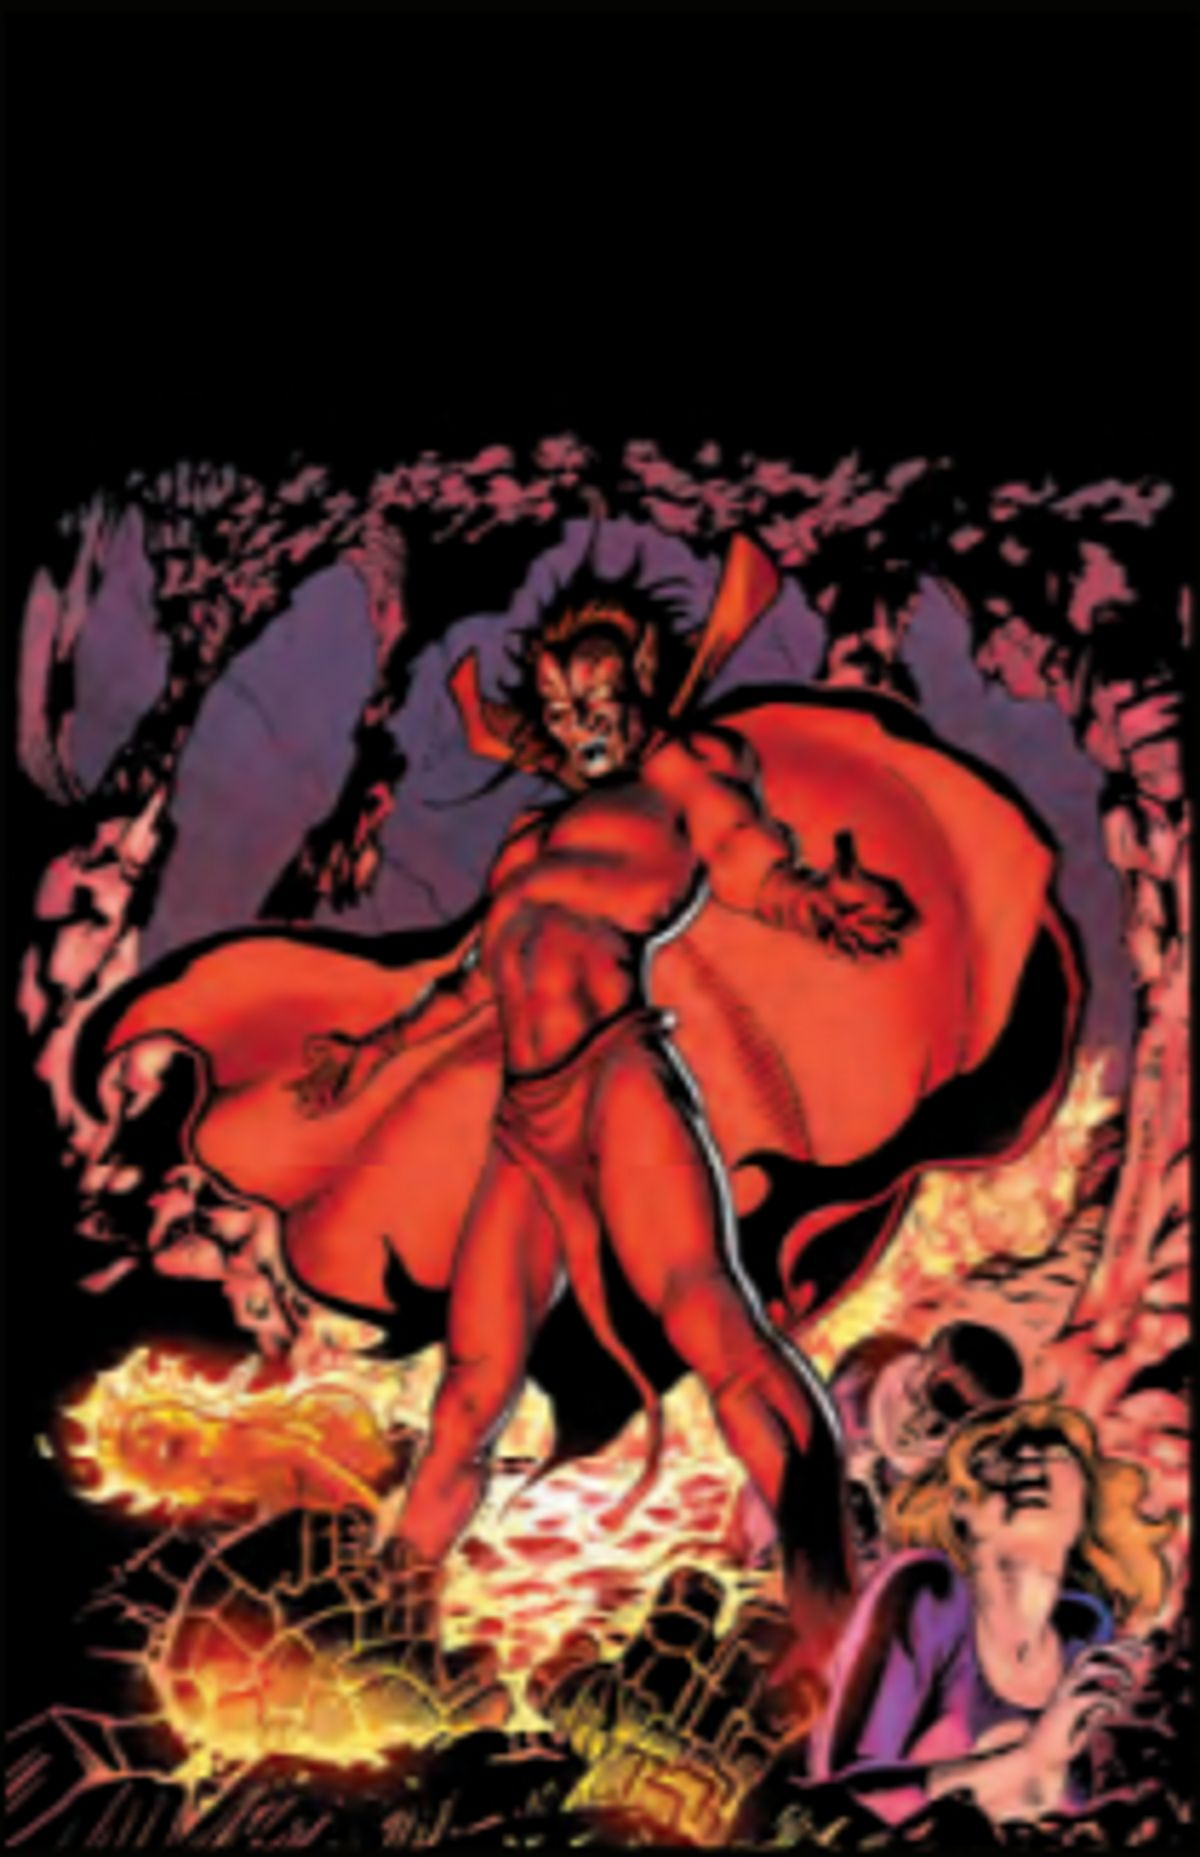 Speak of the Devil - Is This Marvel Confirming Big Mephisto Plans?